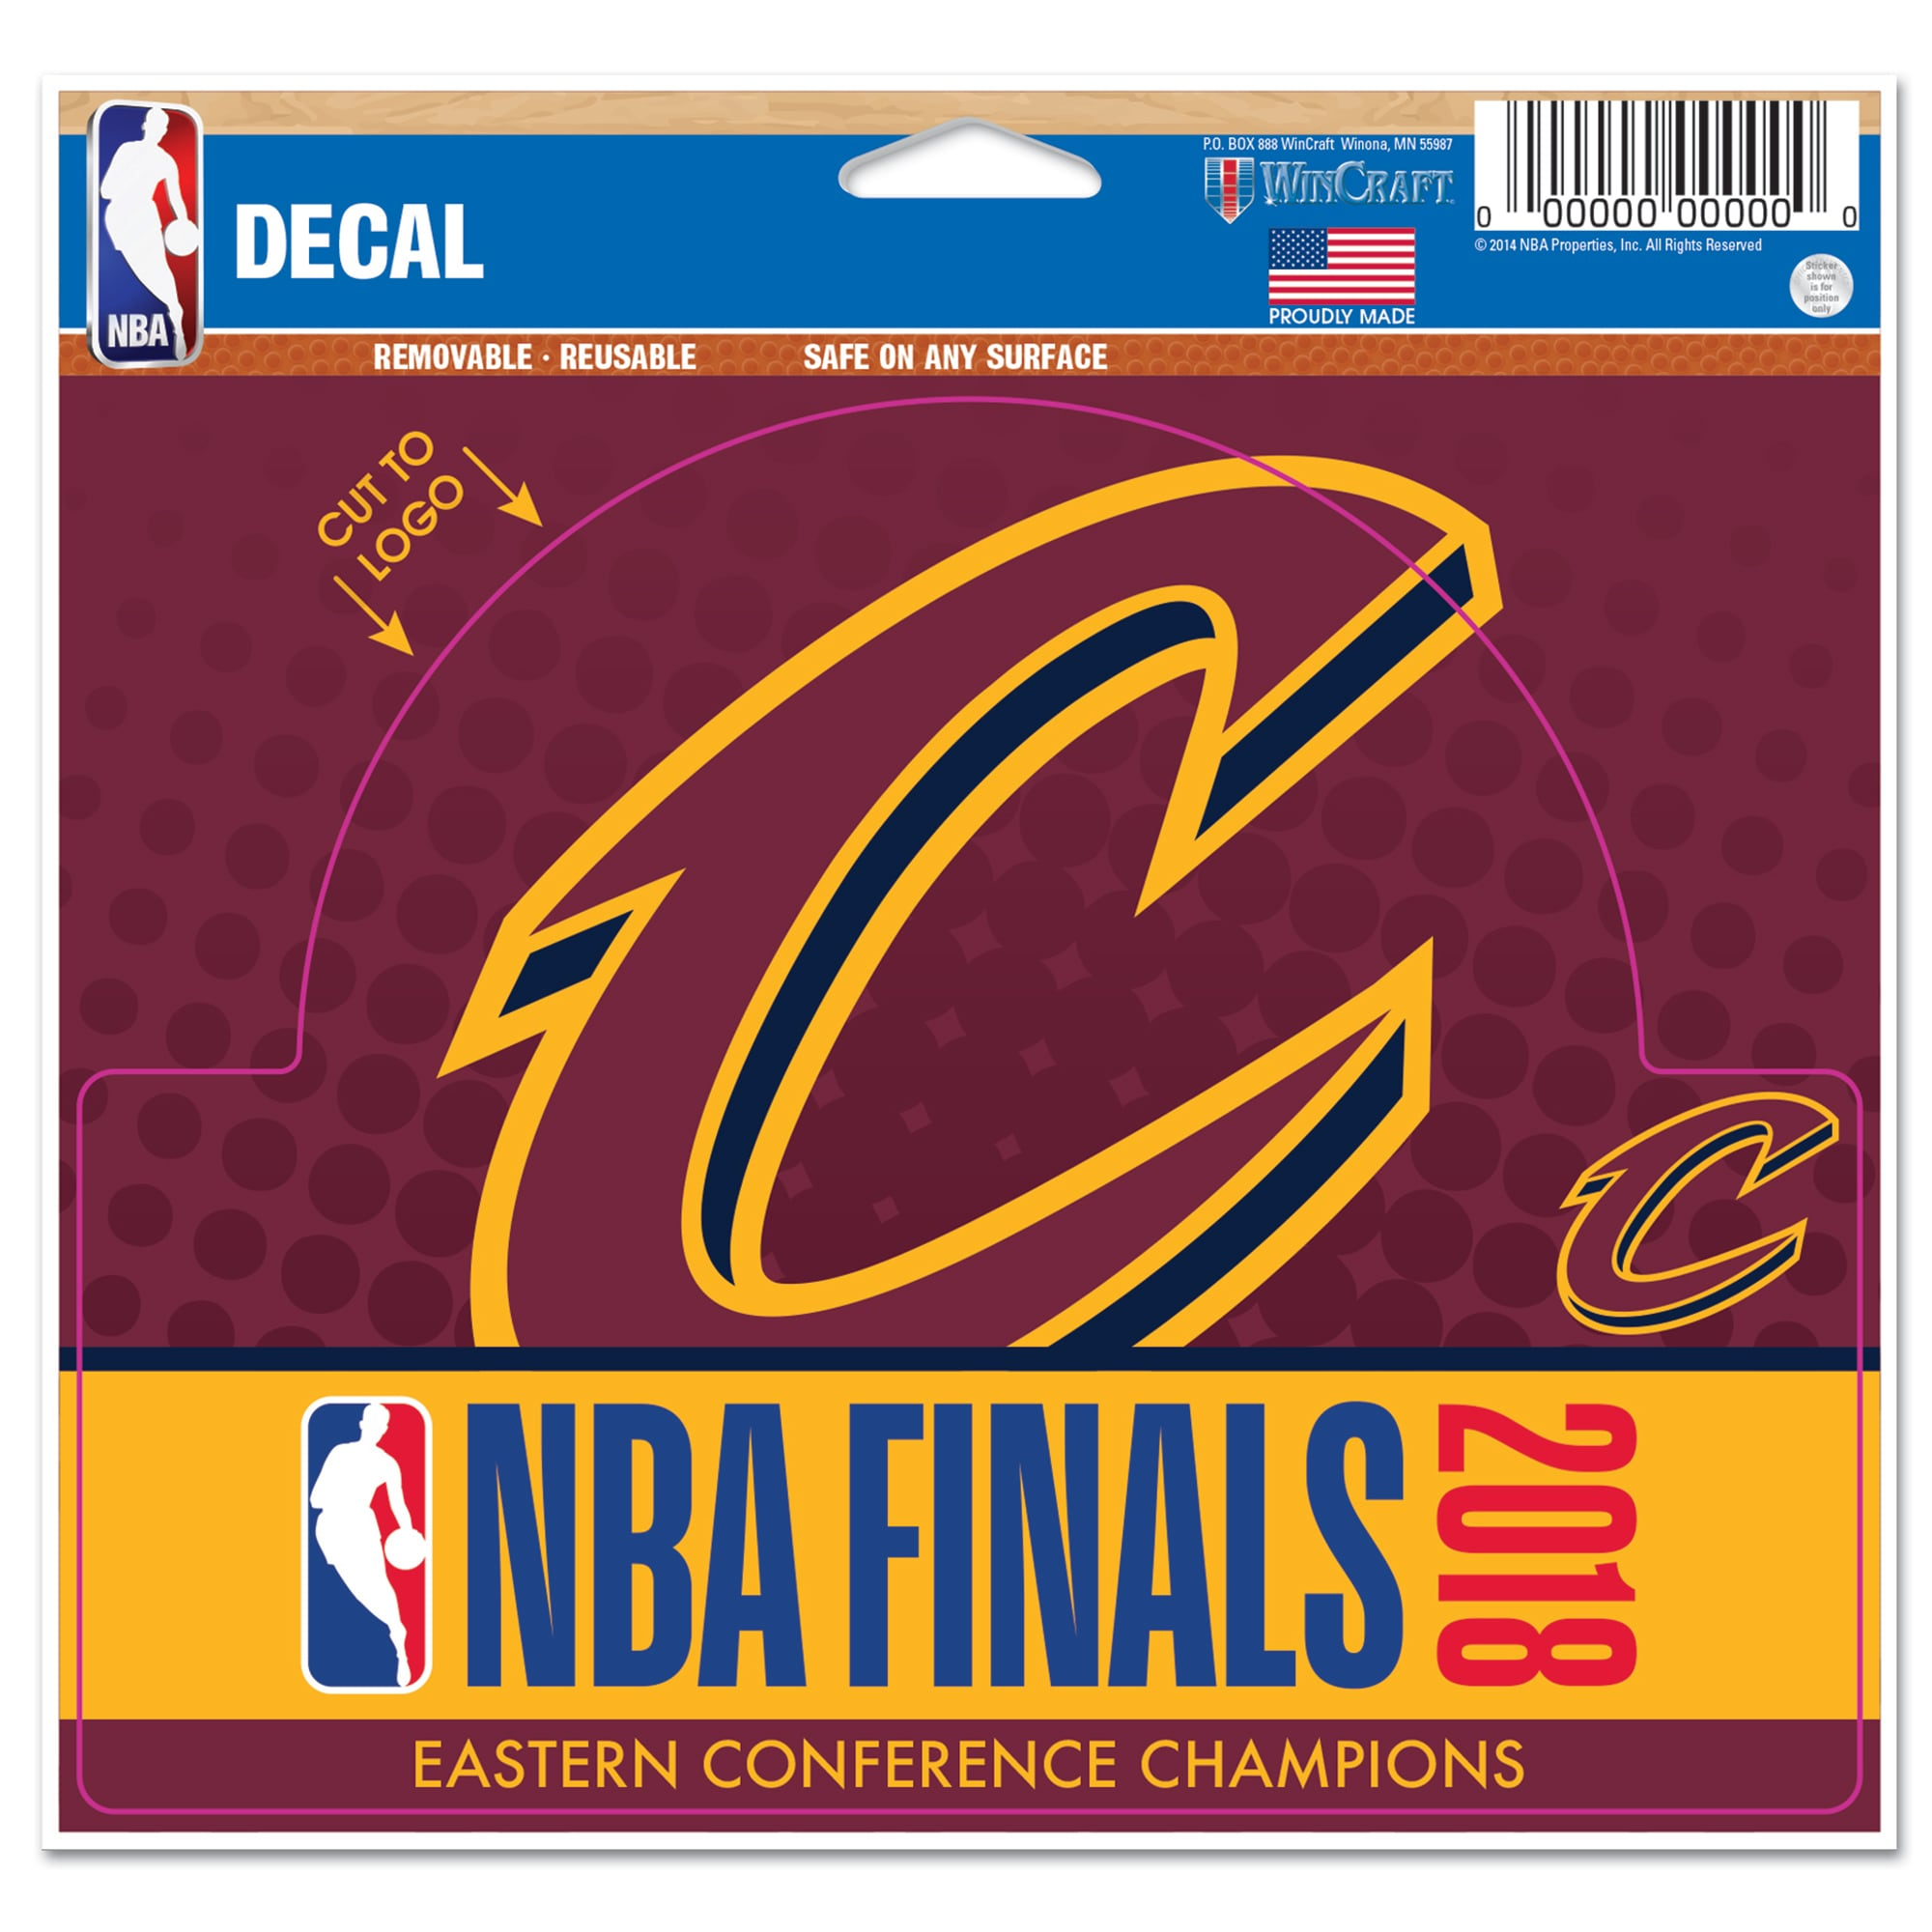 """Cleveland Cavaliers WinCraft 2018 Eastern Conference Champions 5"""" x 6"""" Cut To Logo Multi-Use Decal"""